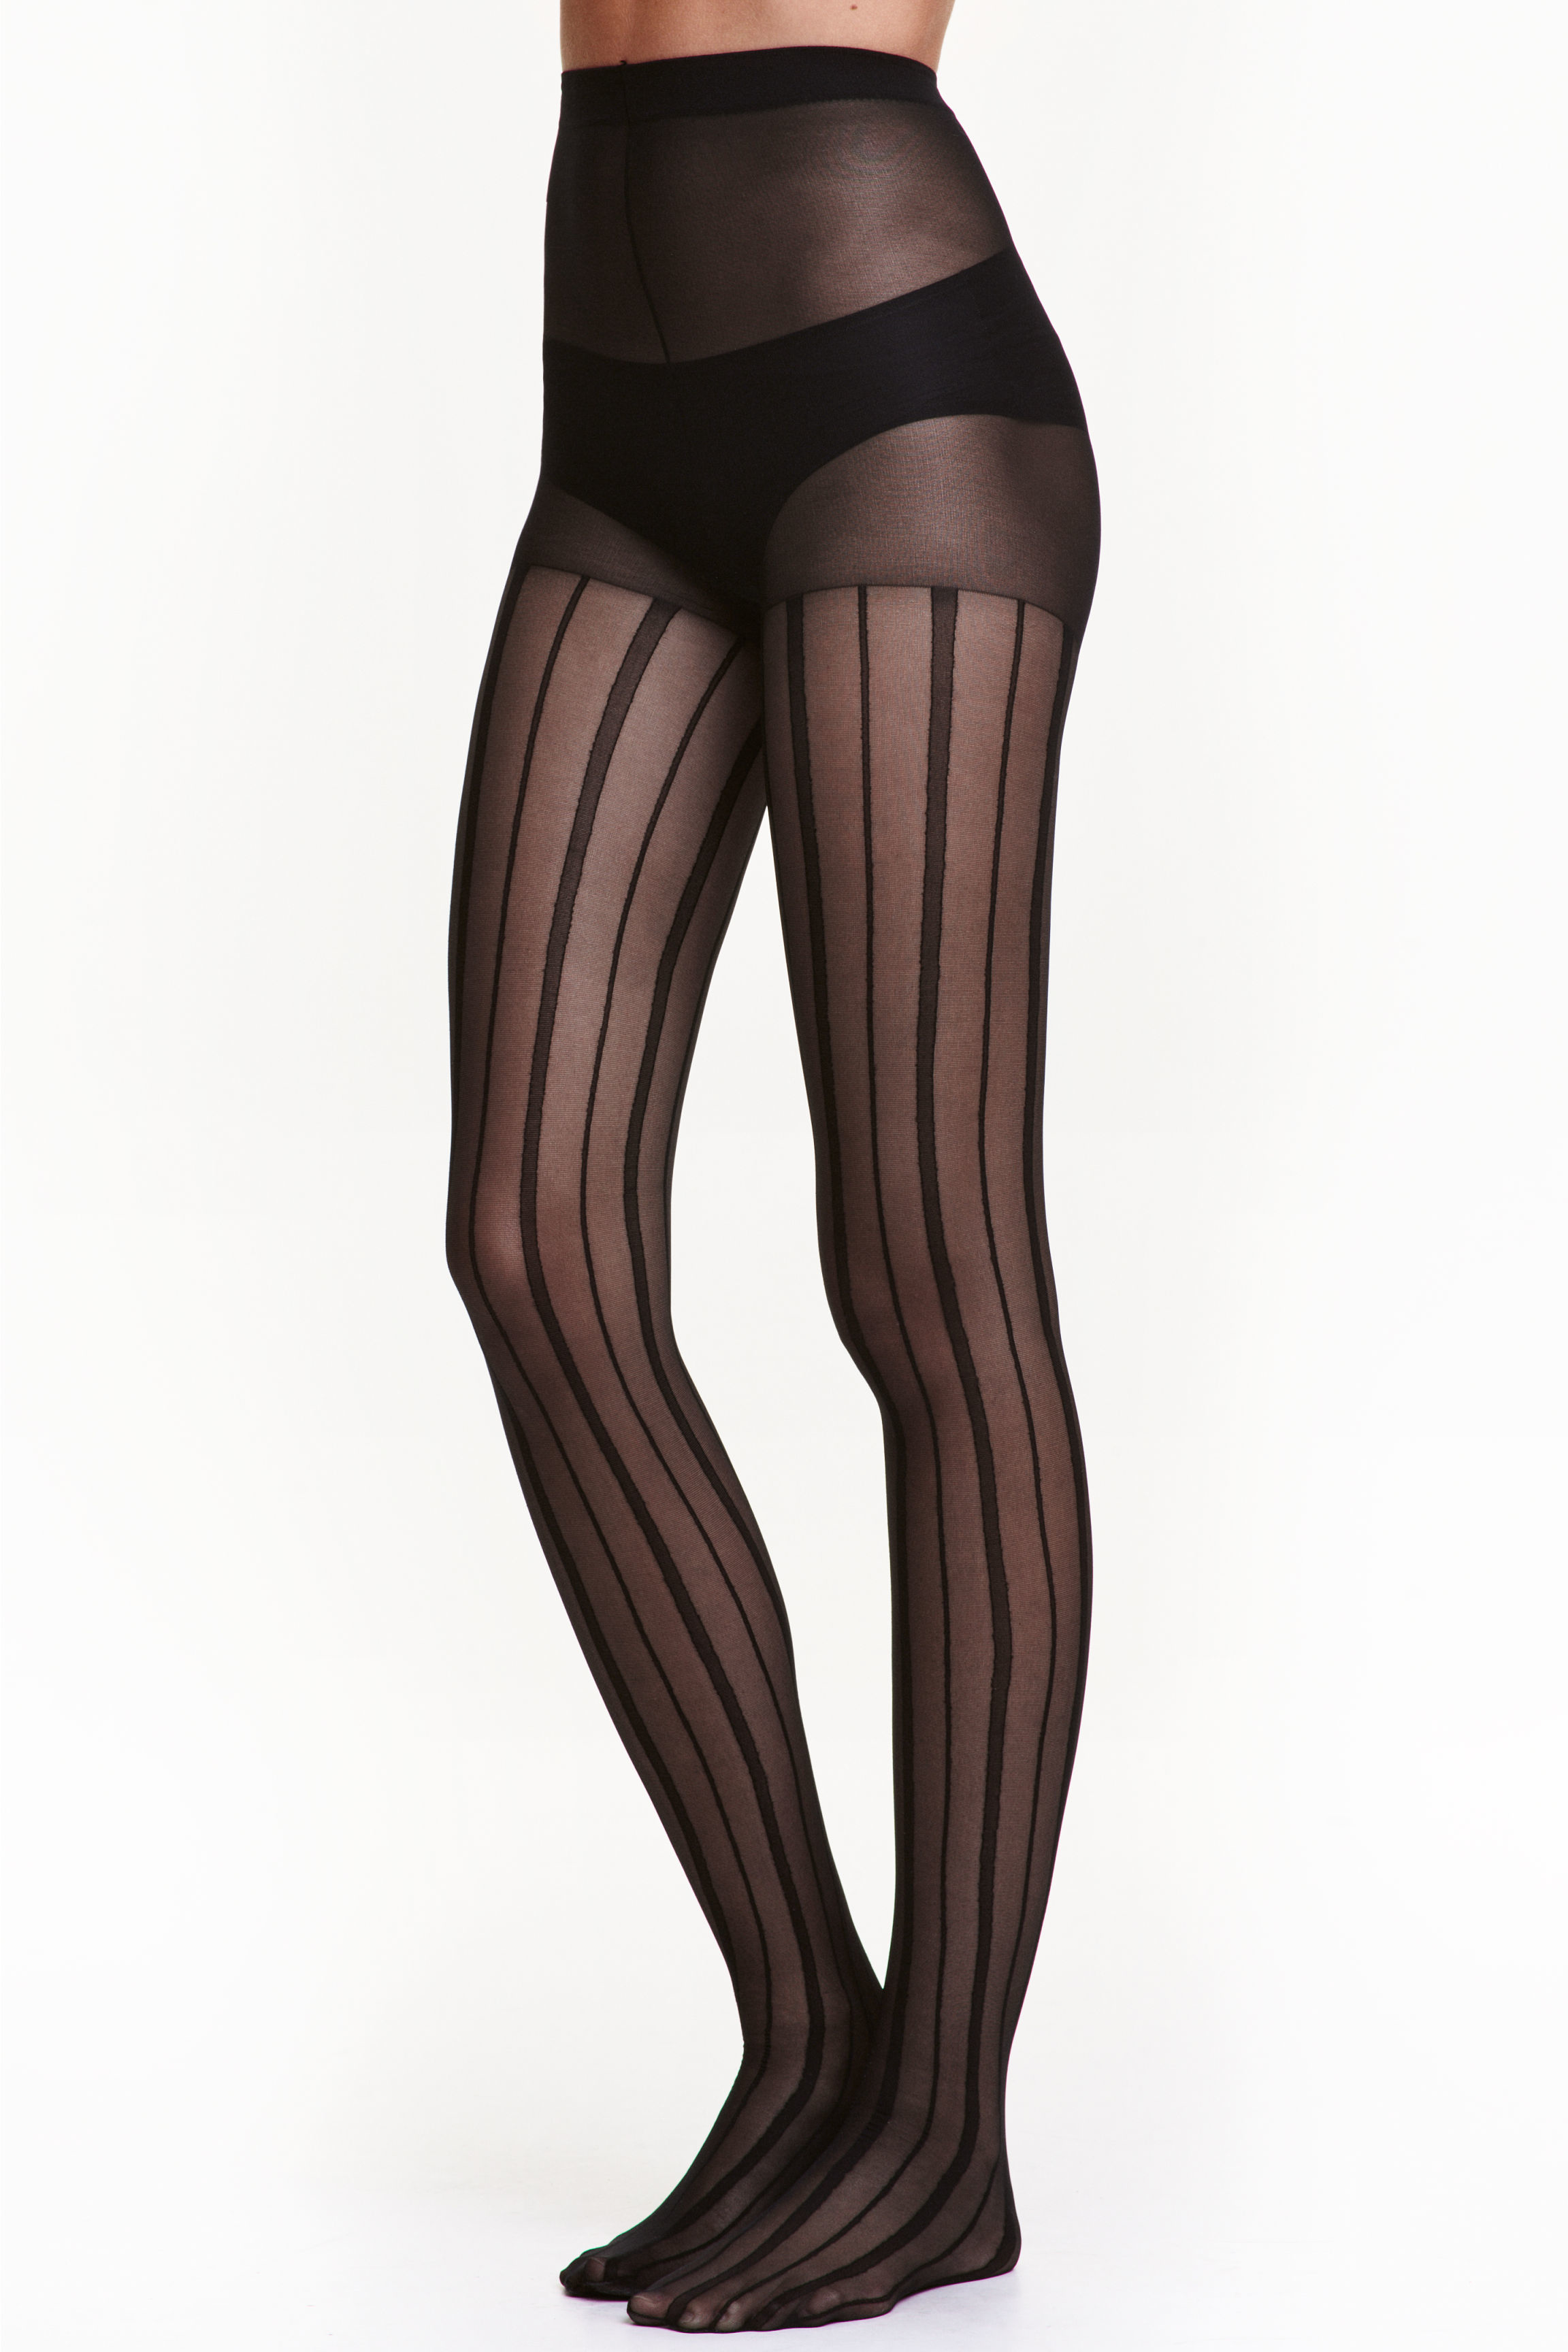 H&m Striped Tights in Black